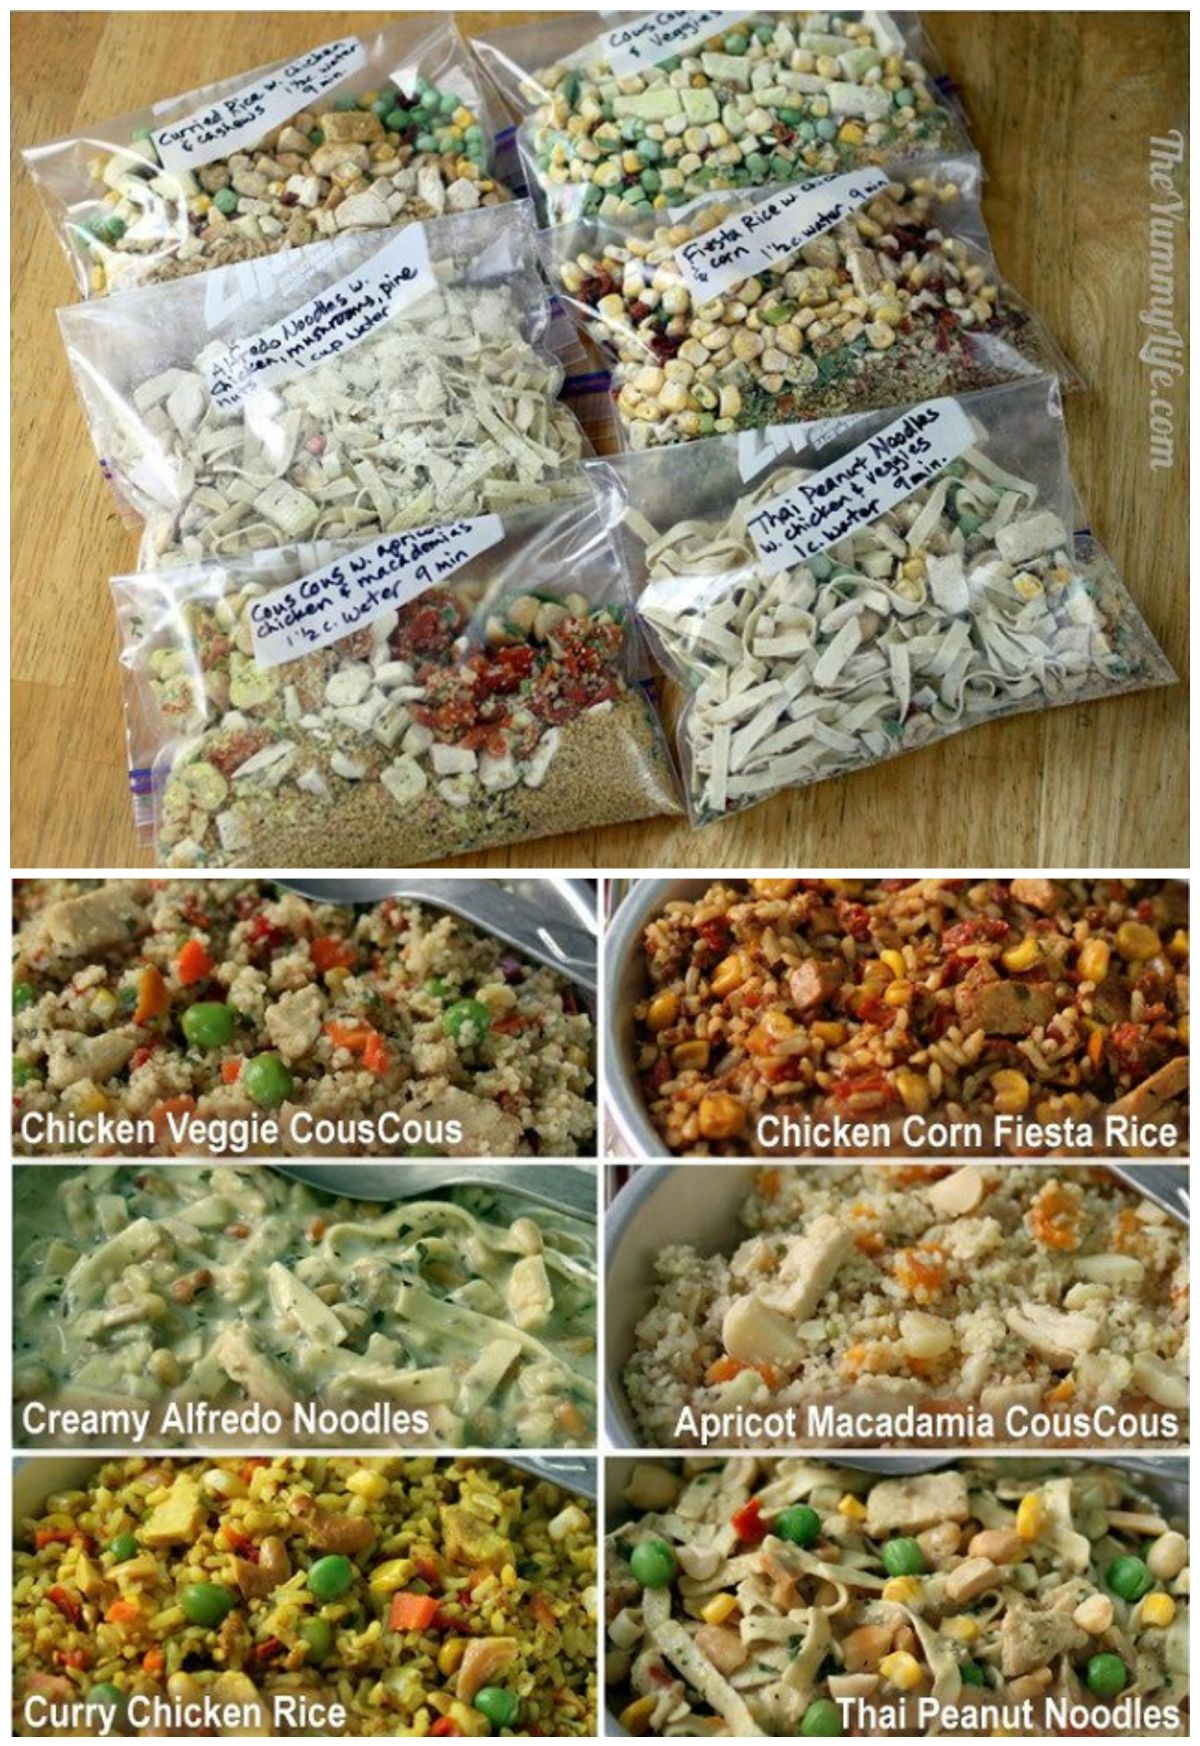 Wohnmobil Küche Rezepte 6 Instant Meals For Backpacking Just Add Boiling Water